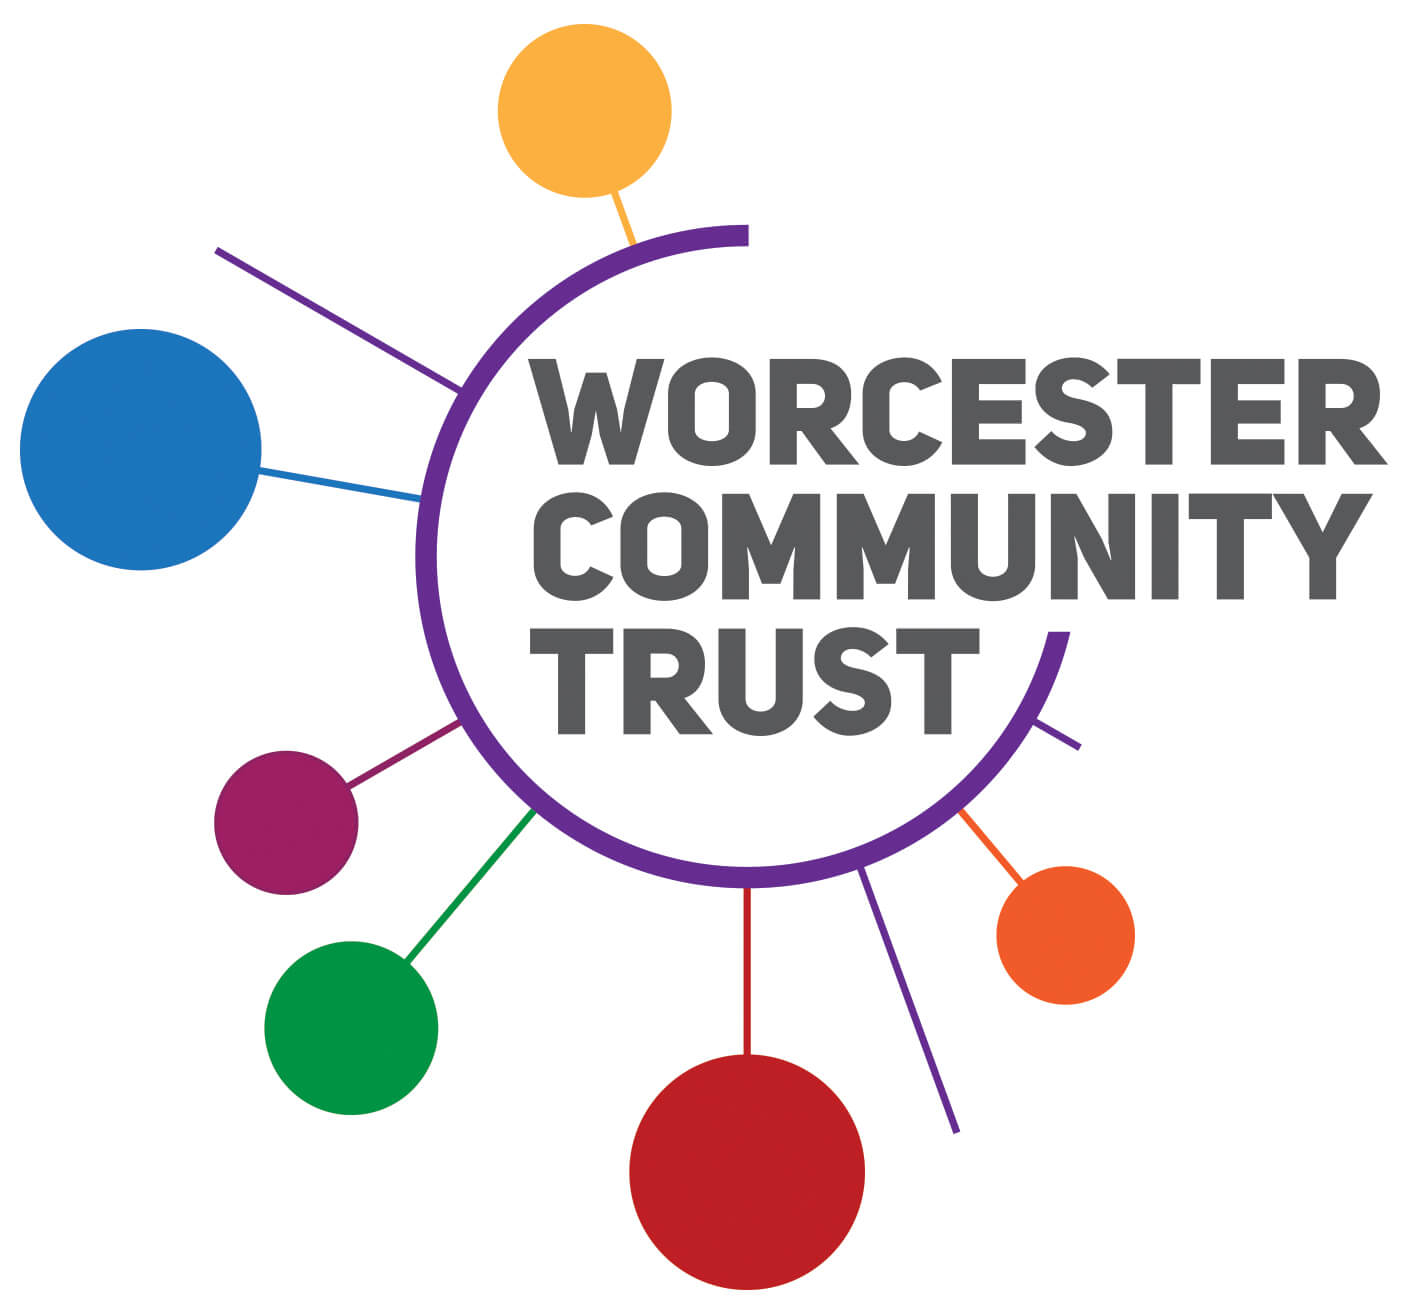 Meeting clipart trust Worcester easy ideal Trust